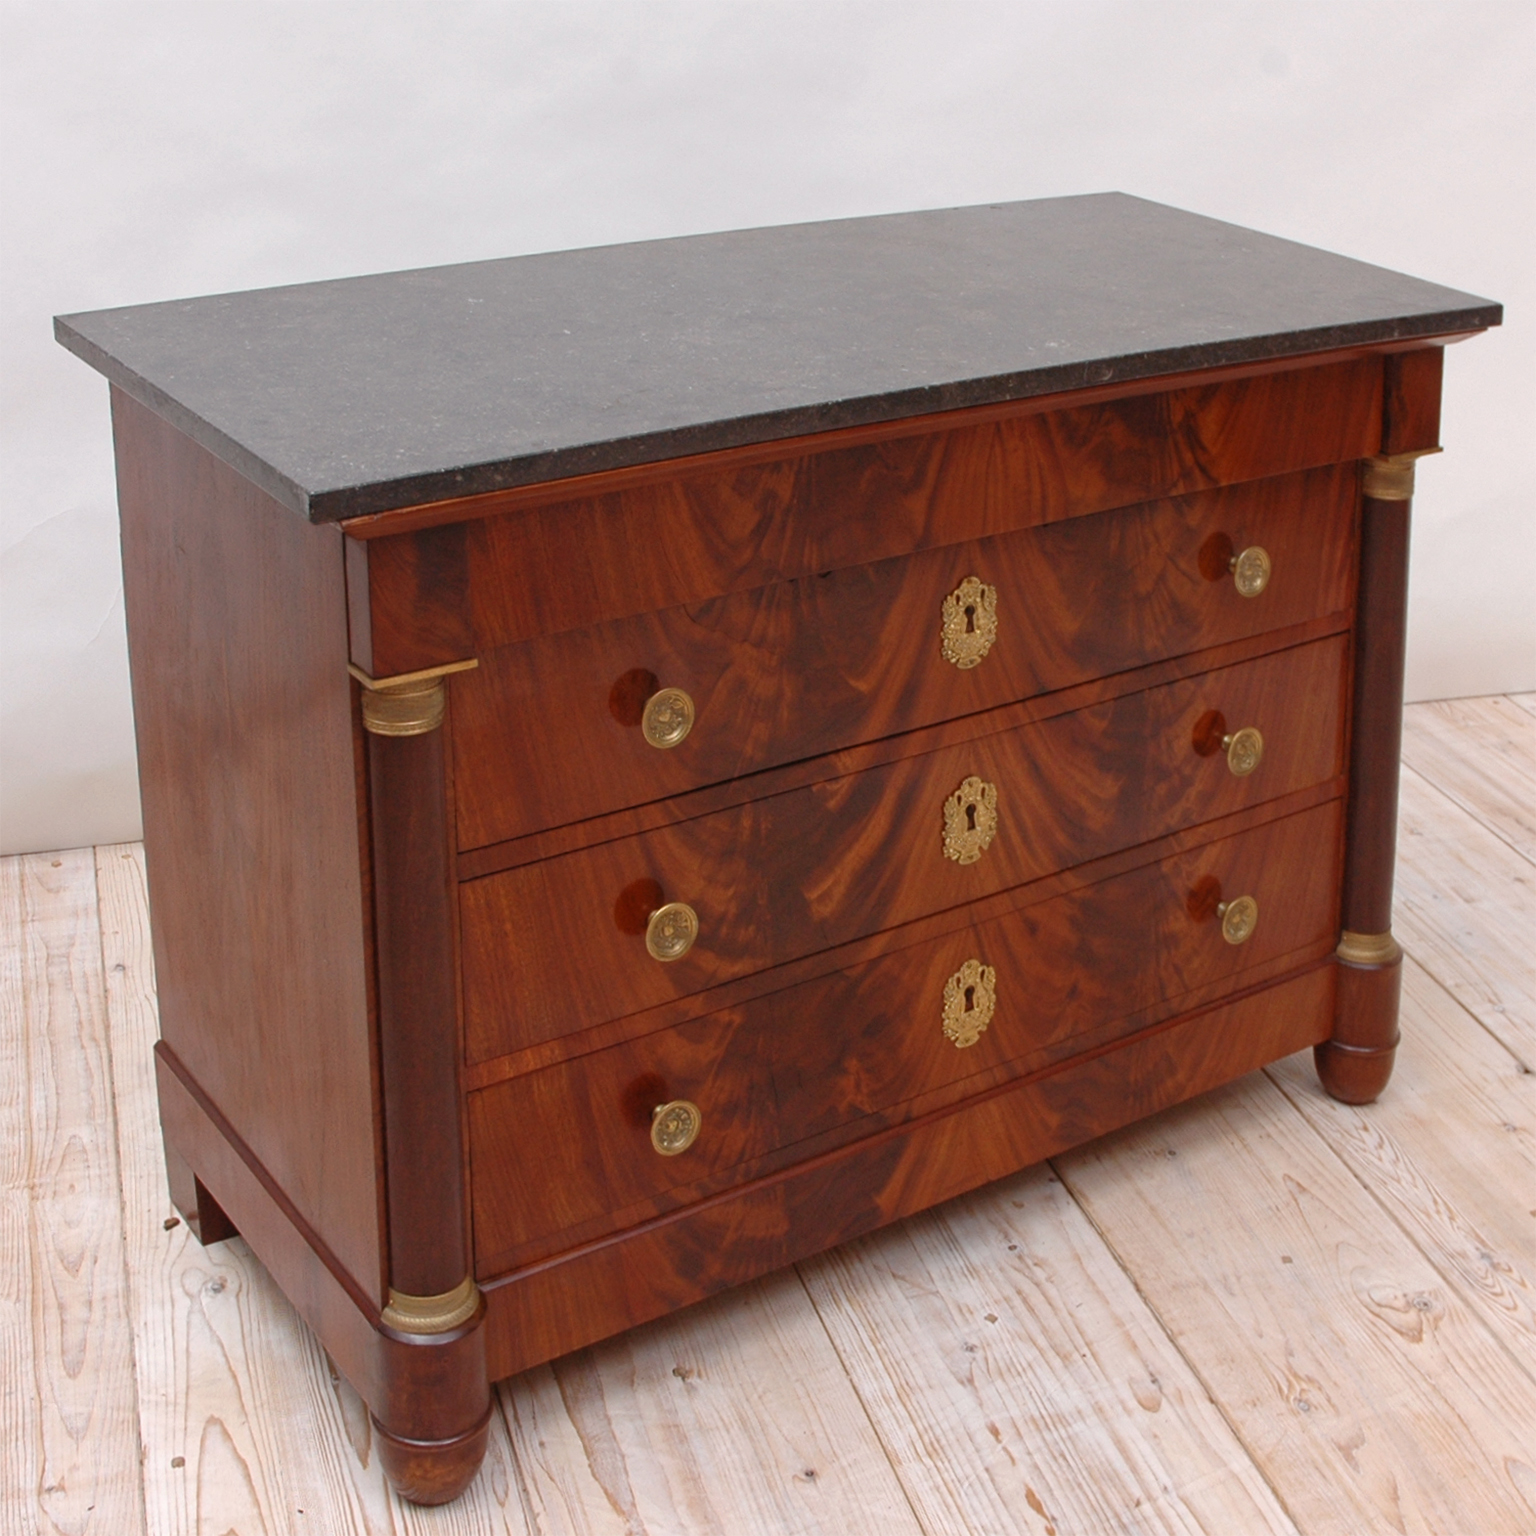 French Empire Chest of Drawers in Mahogany with Ormolu and Grey ...